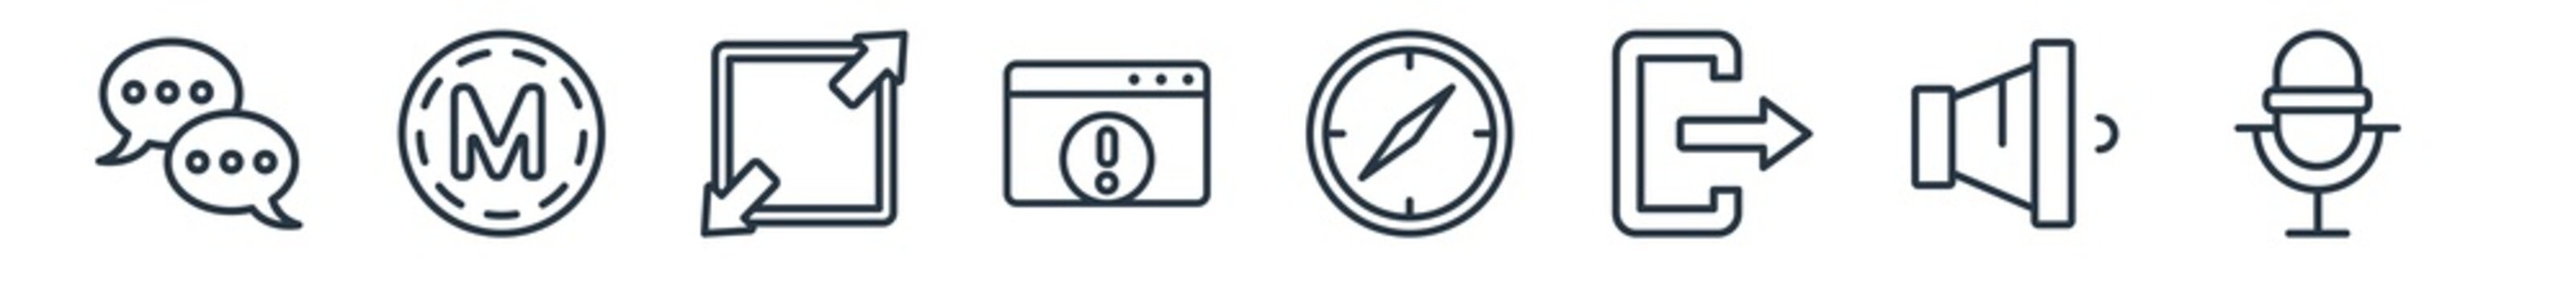 linear set of user interface outline icons. line vector icons such as bubble speech, medium, enlarge, error page, navigator, voice recording vector illustration.